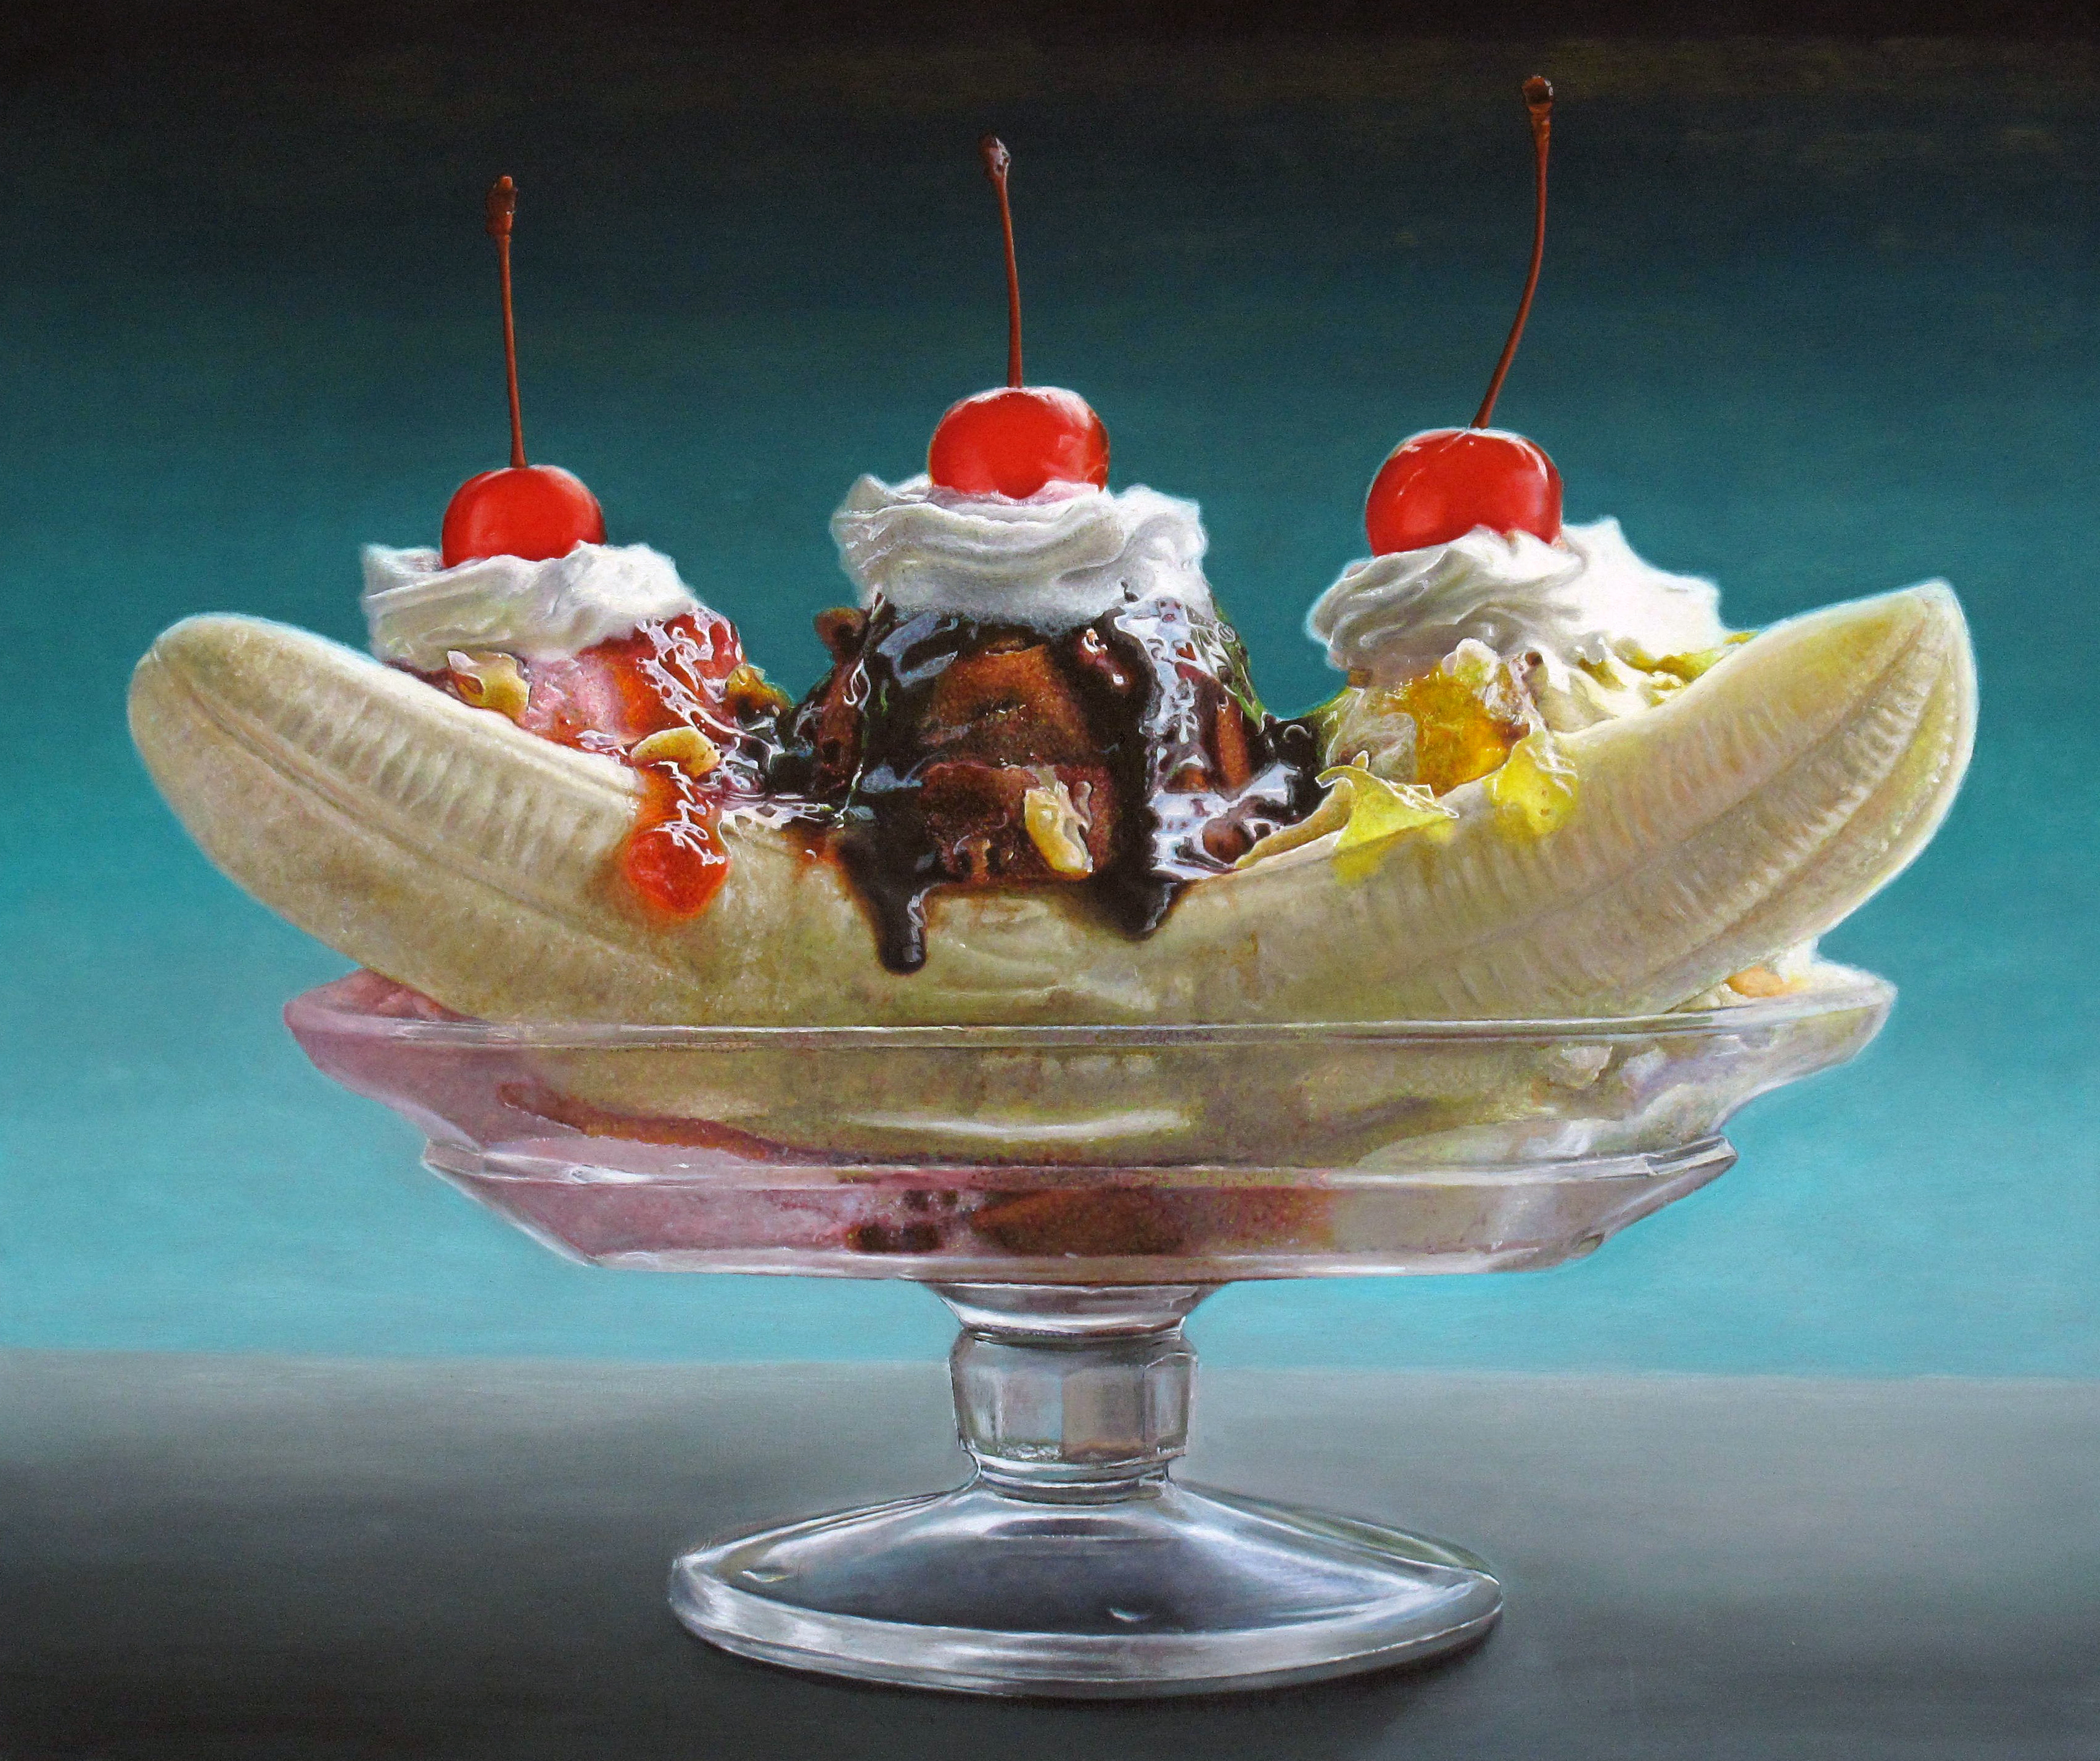 Big Banana Split